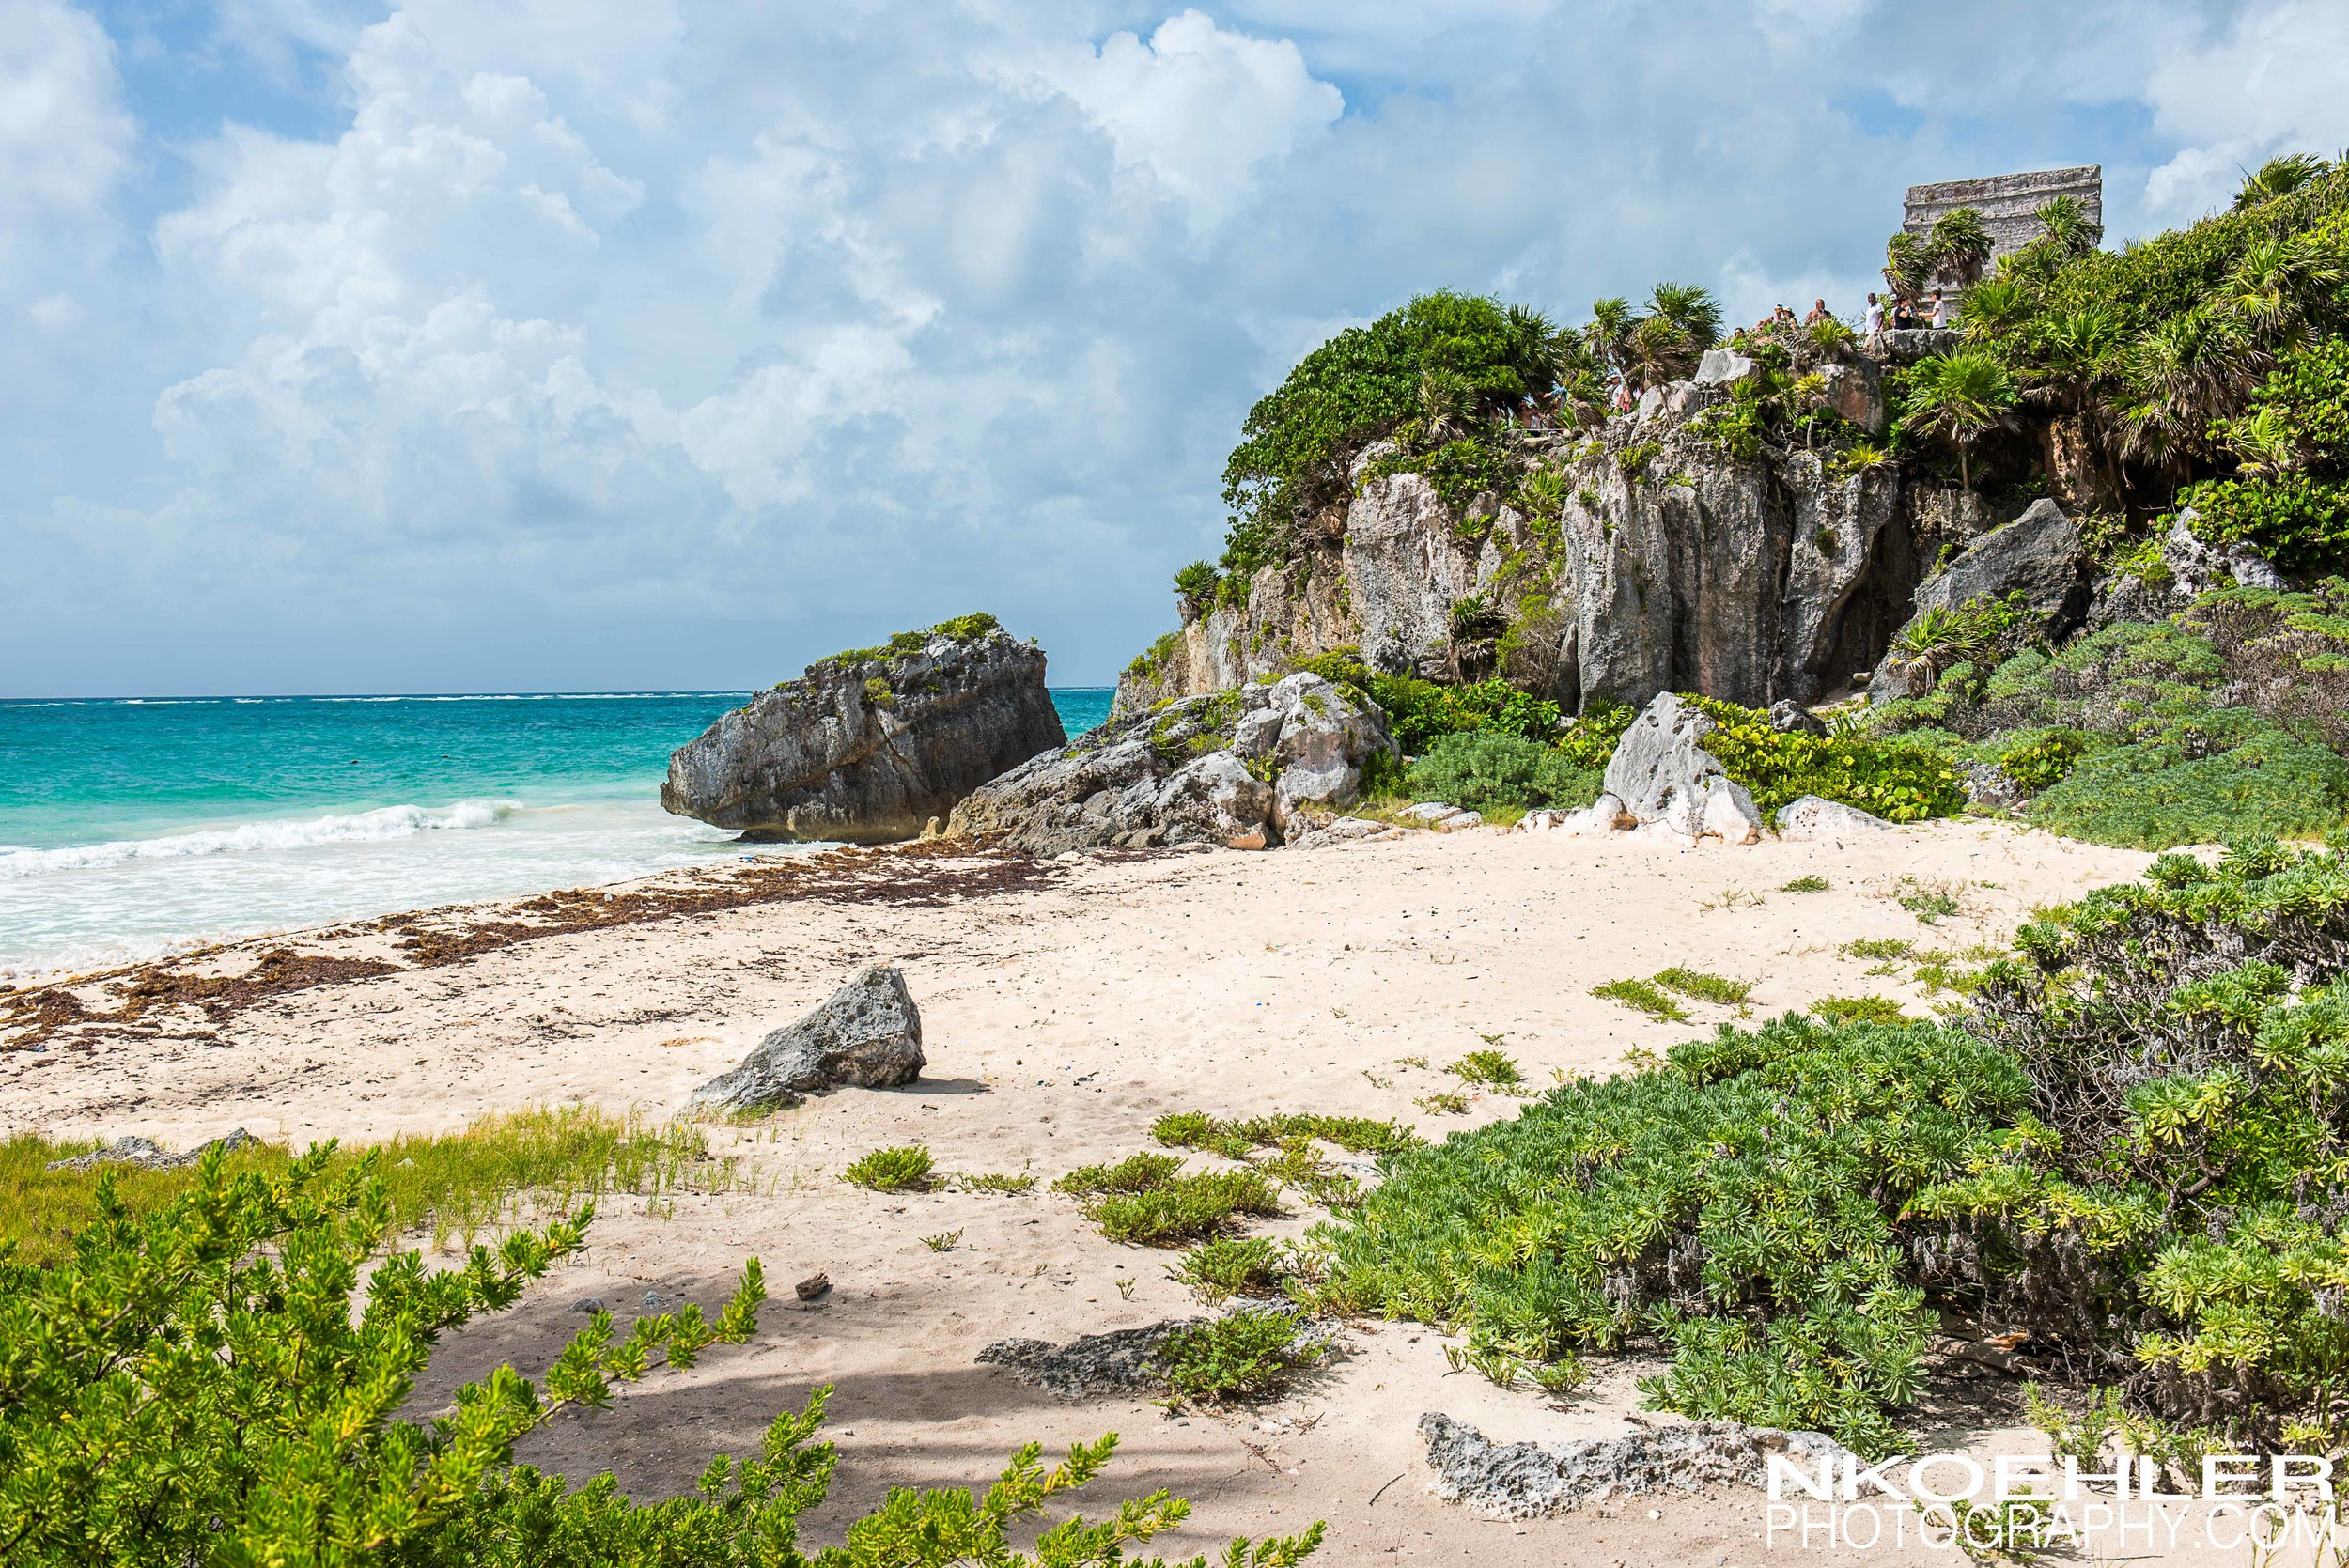 Tulum ancient mayan ruins on the coast of Mexico.